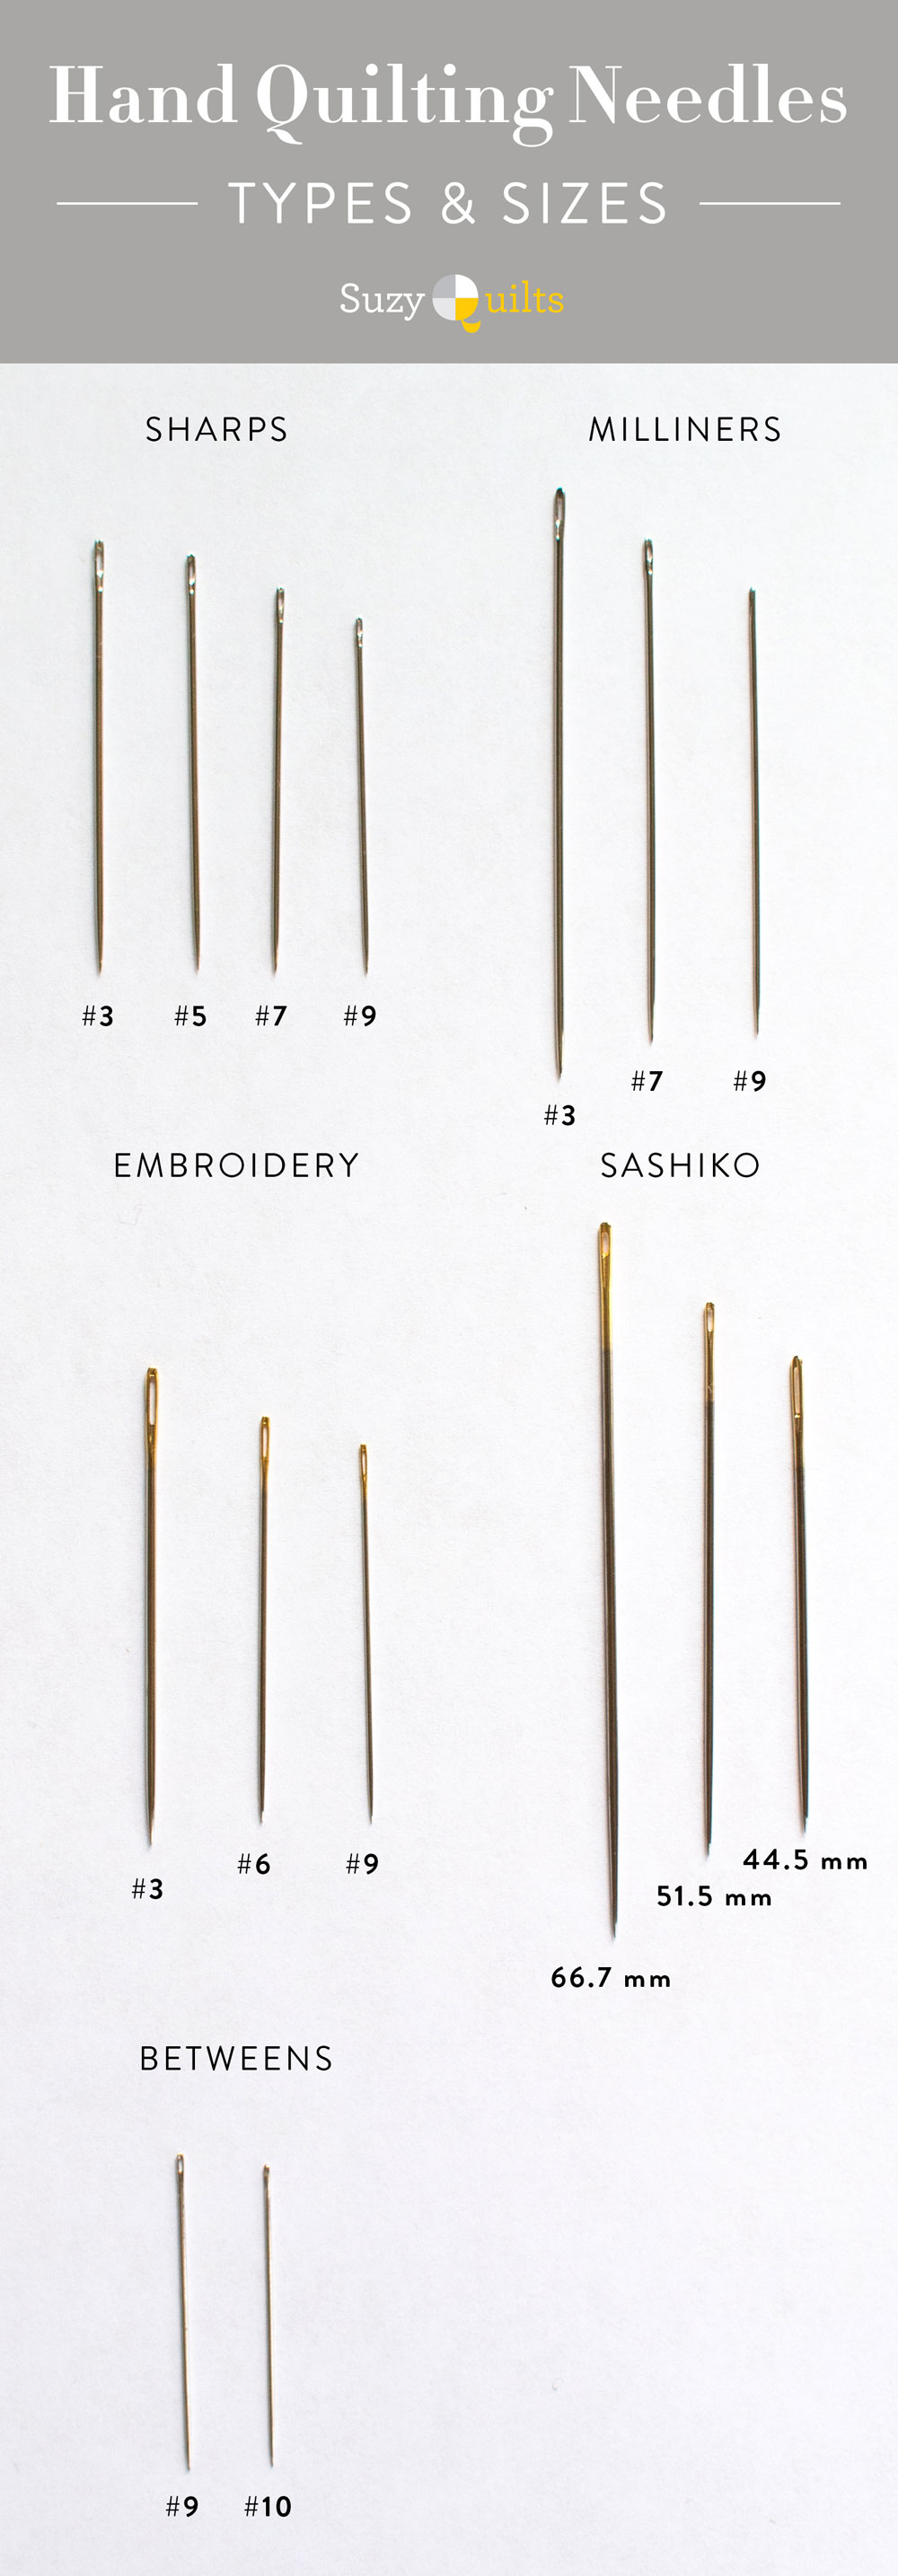 An infographic to help display the different kinds of quilting needles and their sizes